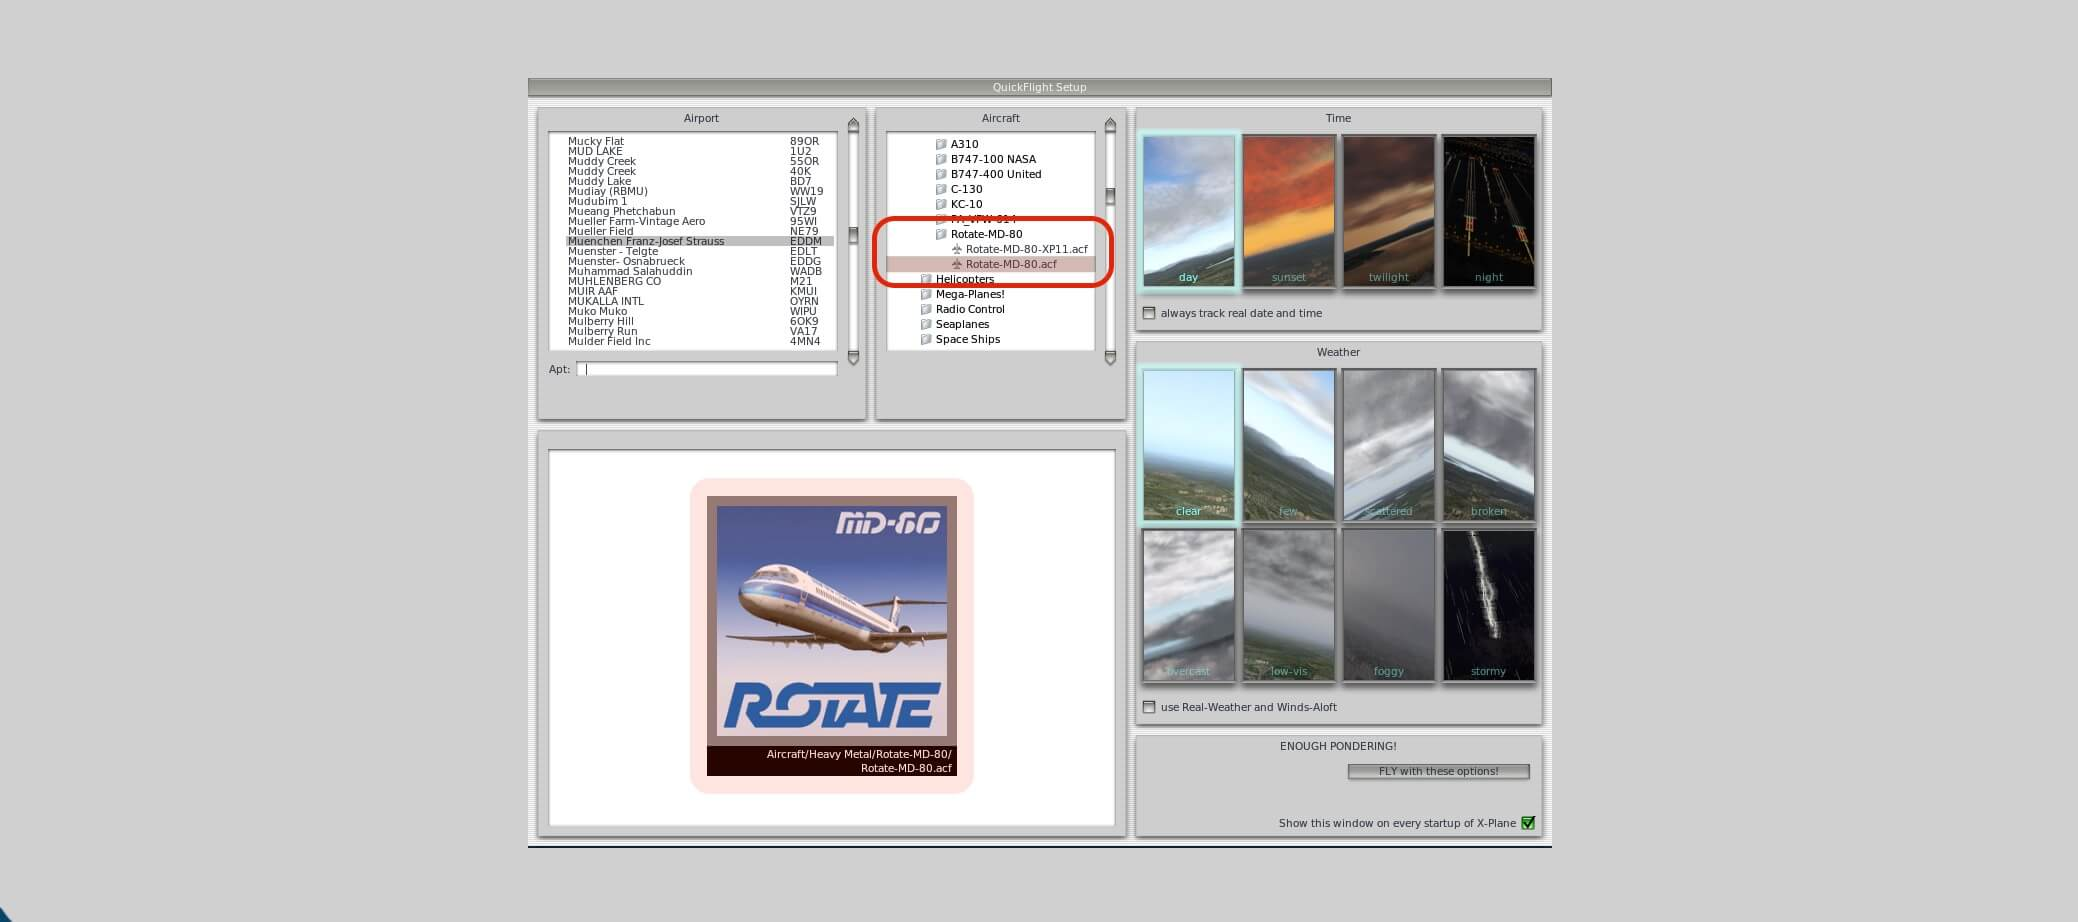 Review   Rotate MD-80 Pro Series   X-Plained, the Source for